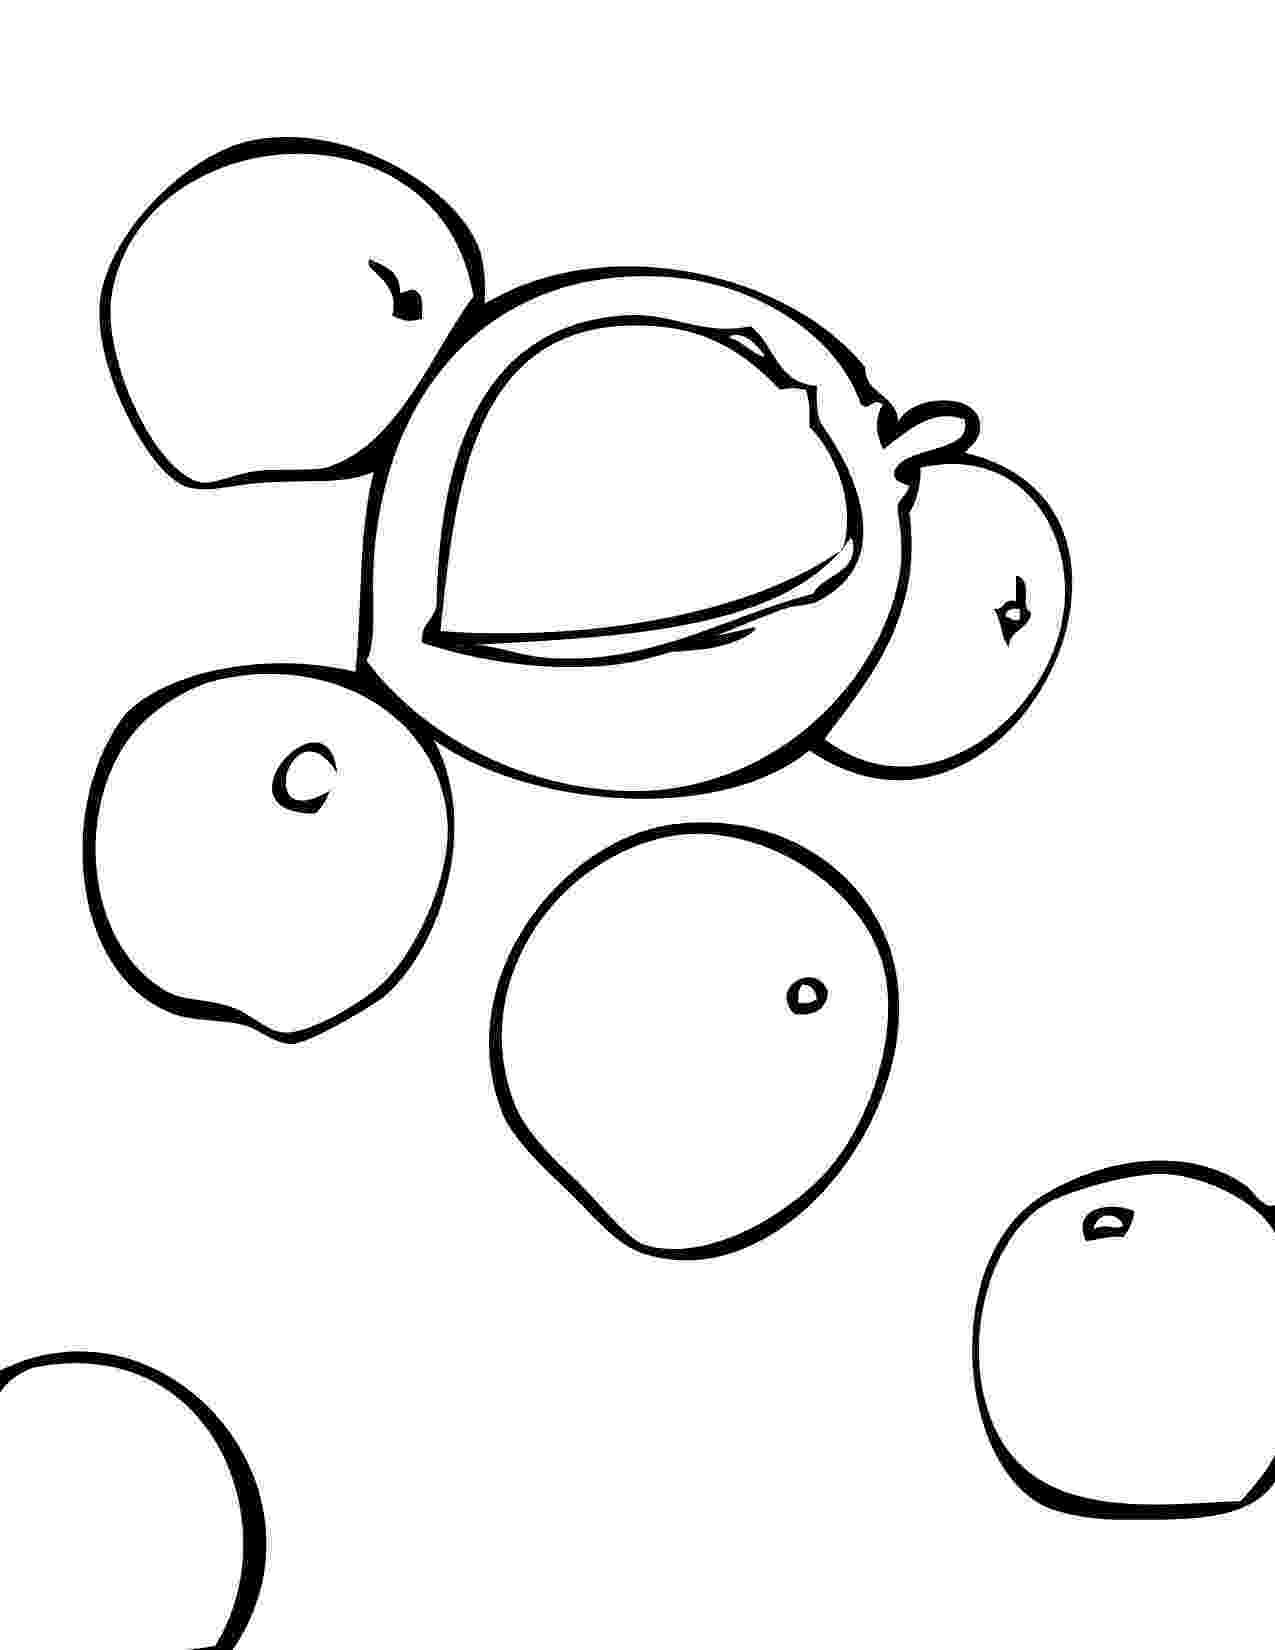 nuts coloring pages nuts coloring page at getcoloringscom free printable nuts pages coloring